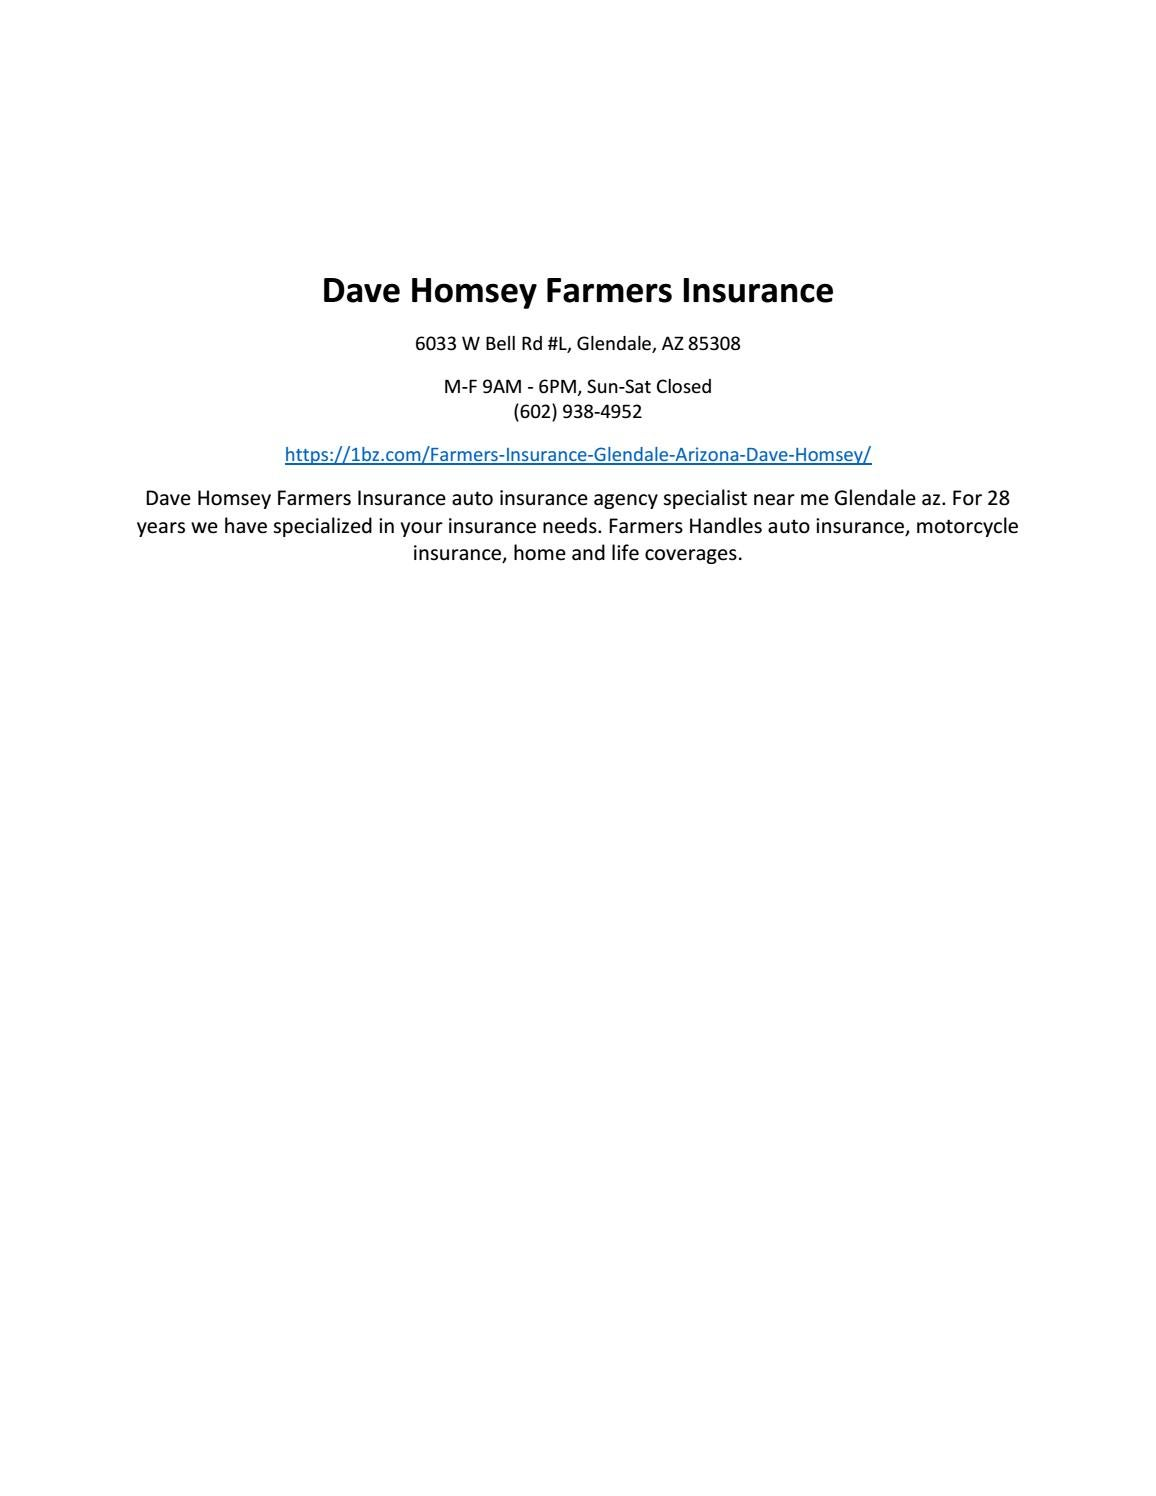 Farmers Auto Insurance >> Dave Homsey Farmers Insurance By Dave Homsey Farmers